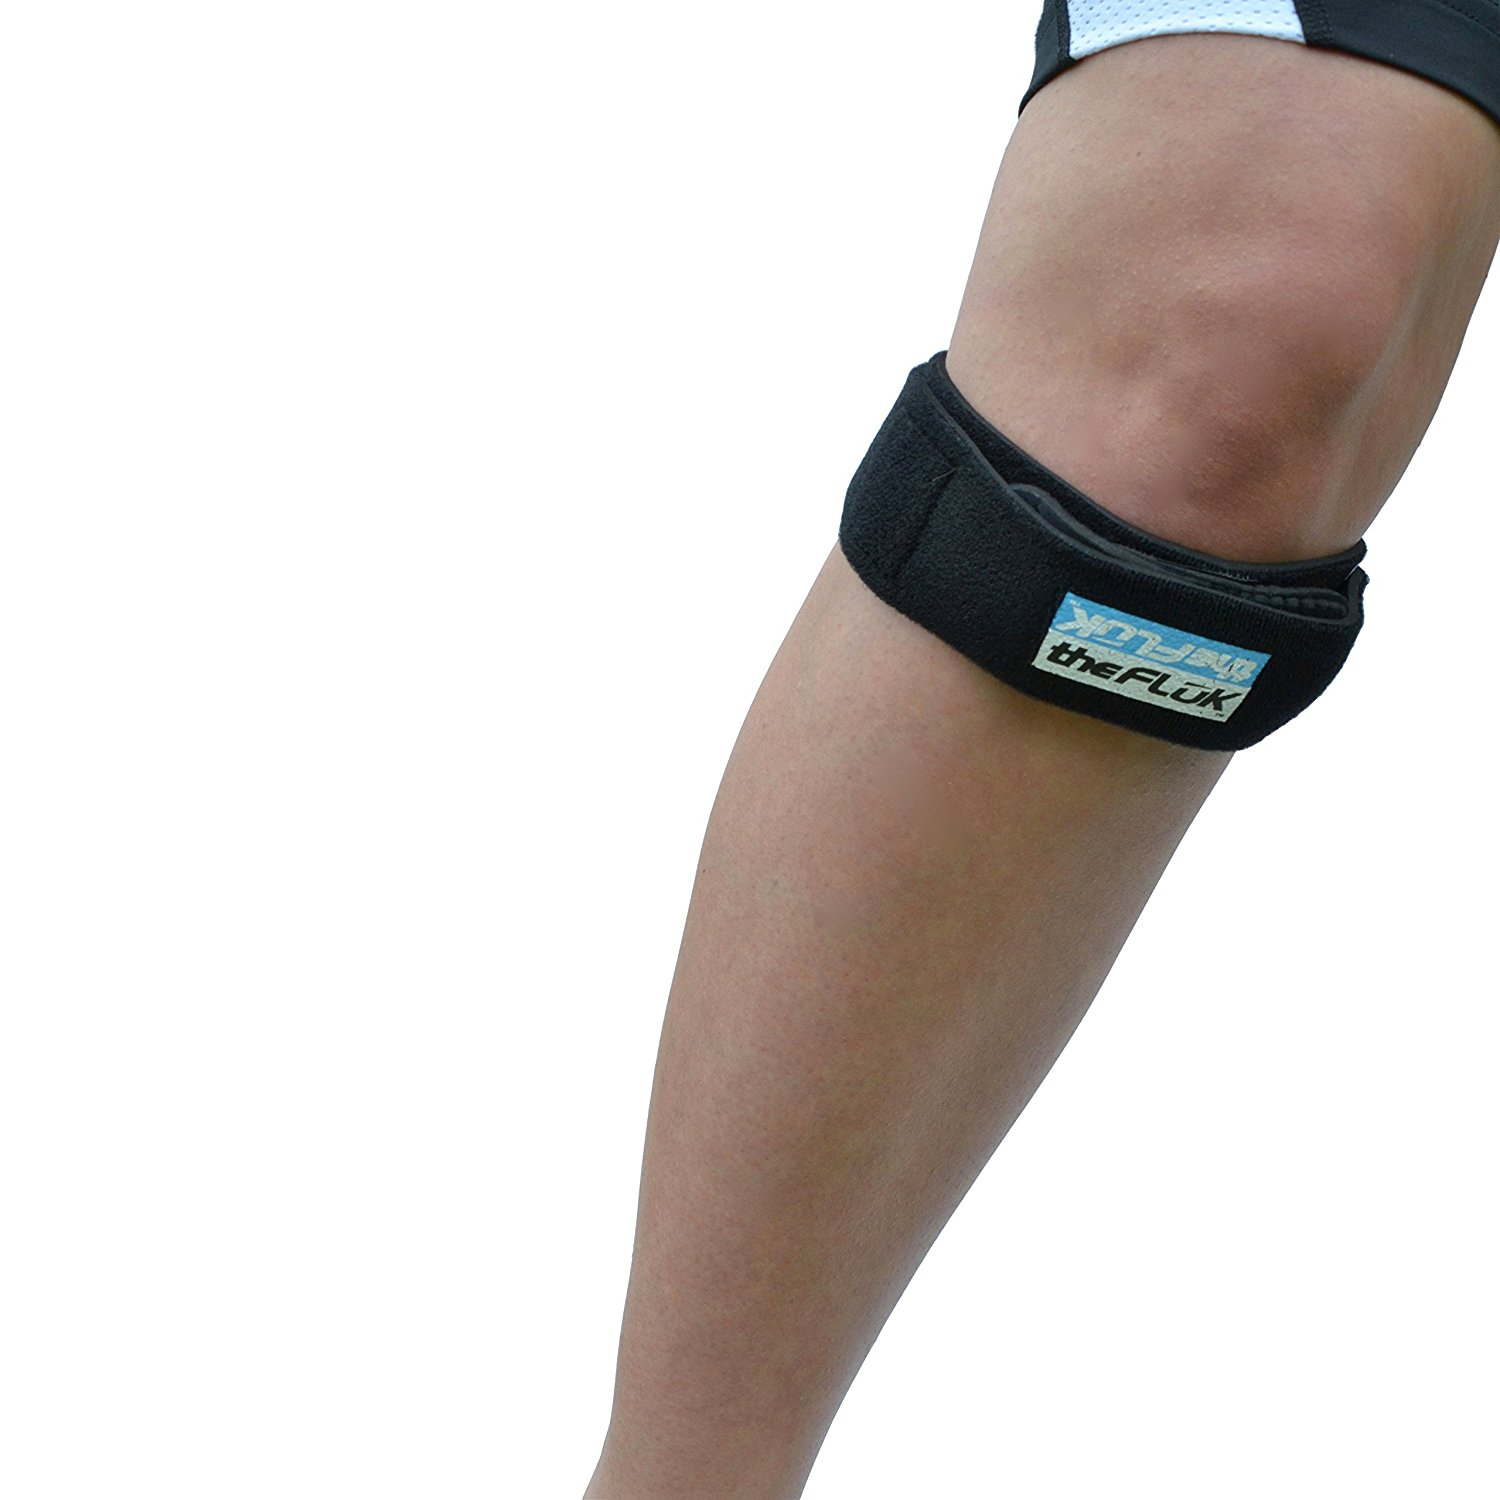 6a48f94b8e The Fluk Premium Adjustable Knee Strap, Knee Pain Relief, Patella  Stabilizer Knee Strap Brace